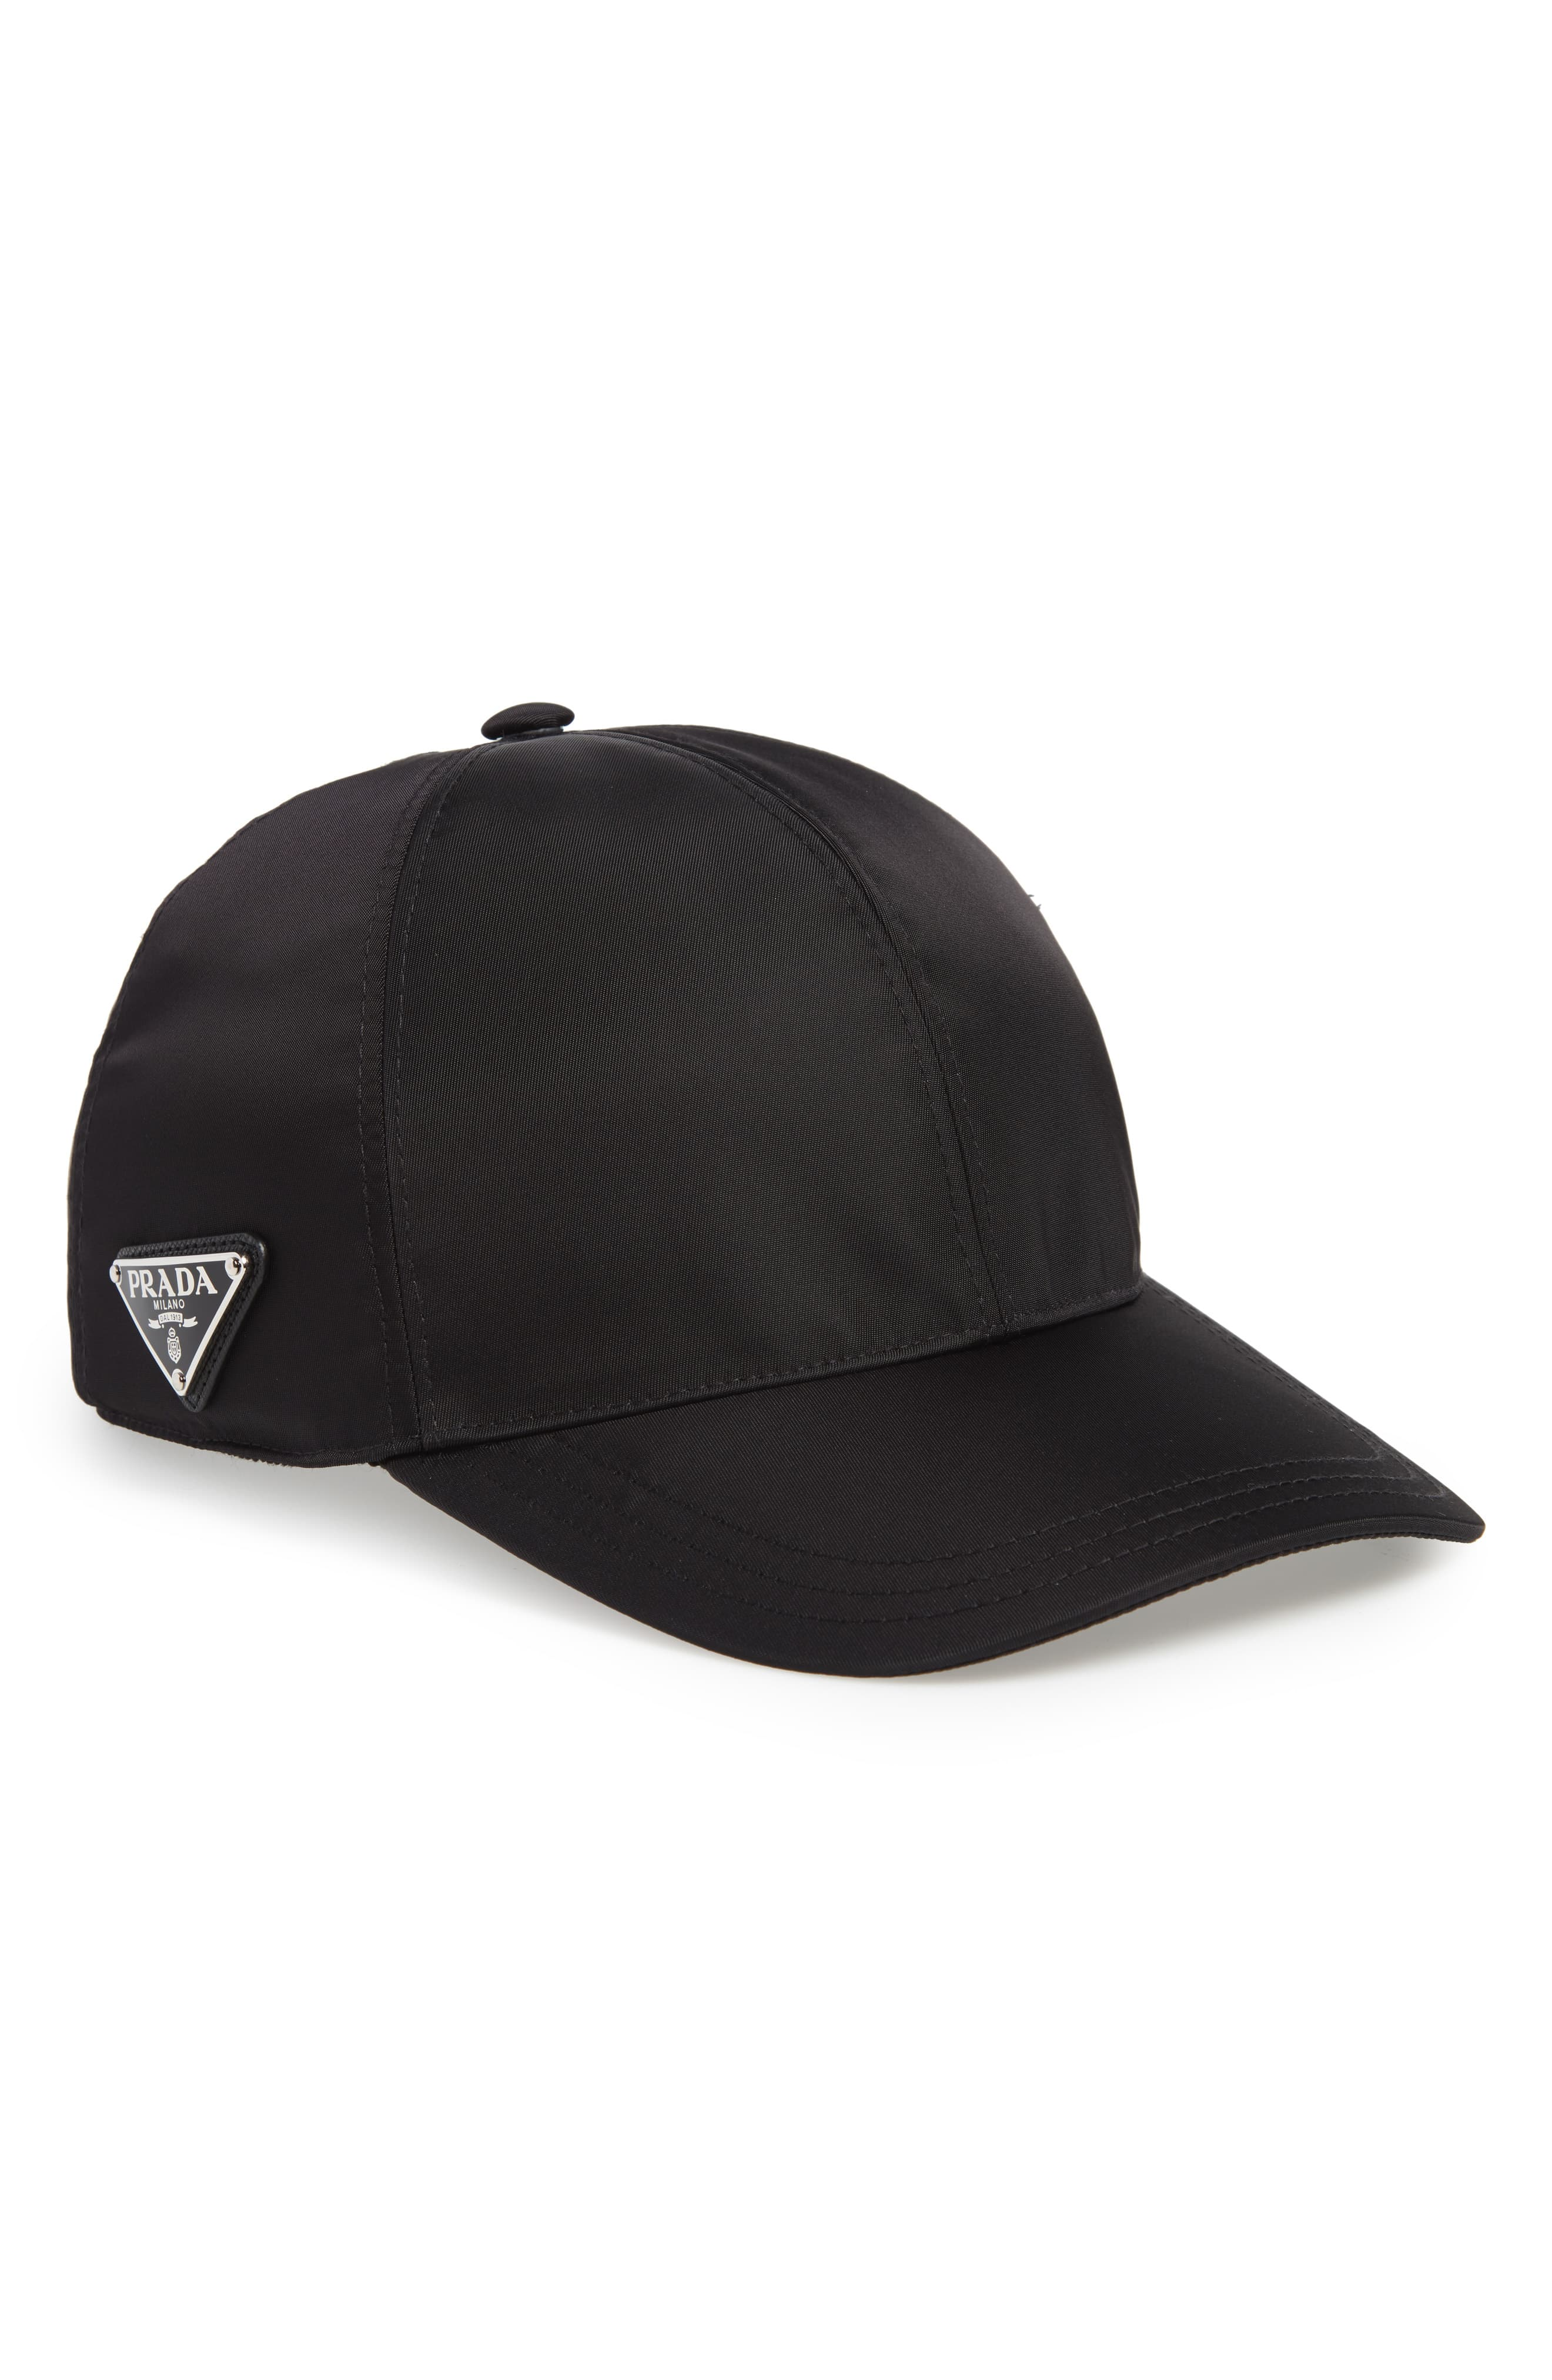 19e7bed5ec299c The Jimmy Chin X is a deep-fitting trucker hat that features the artwork of iconic  filmmaker, lensman, and The North Face athlete Jim…